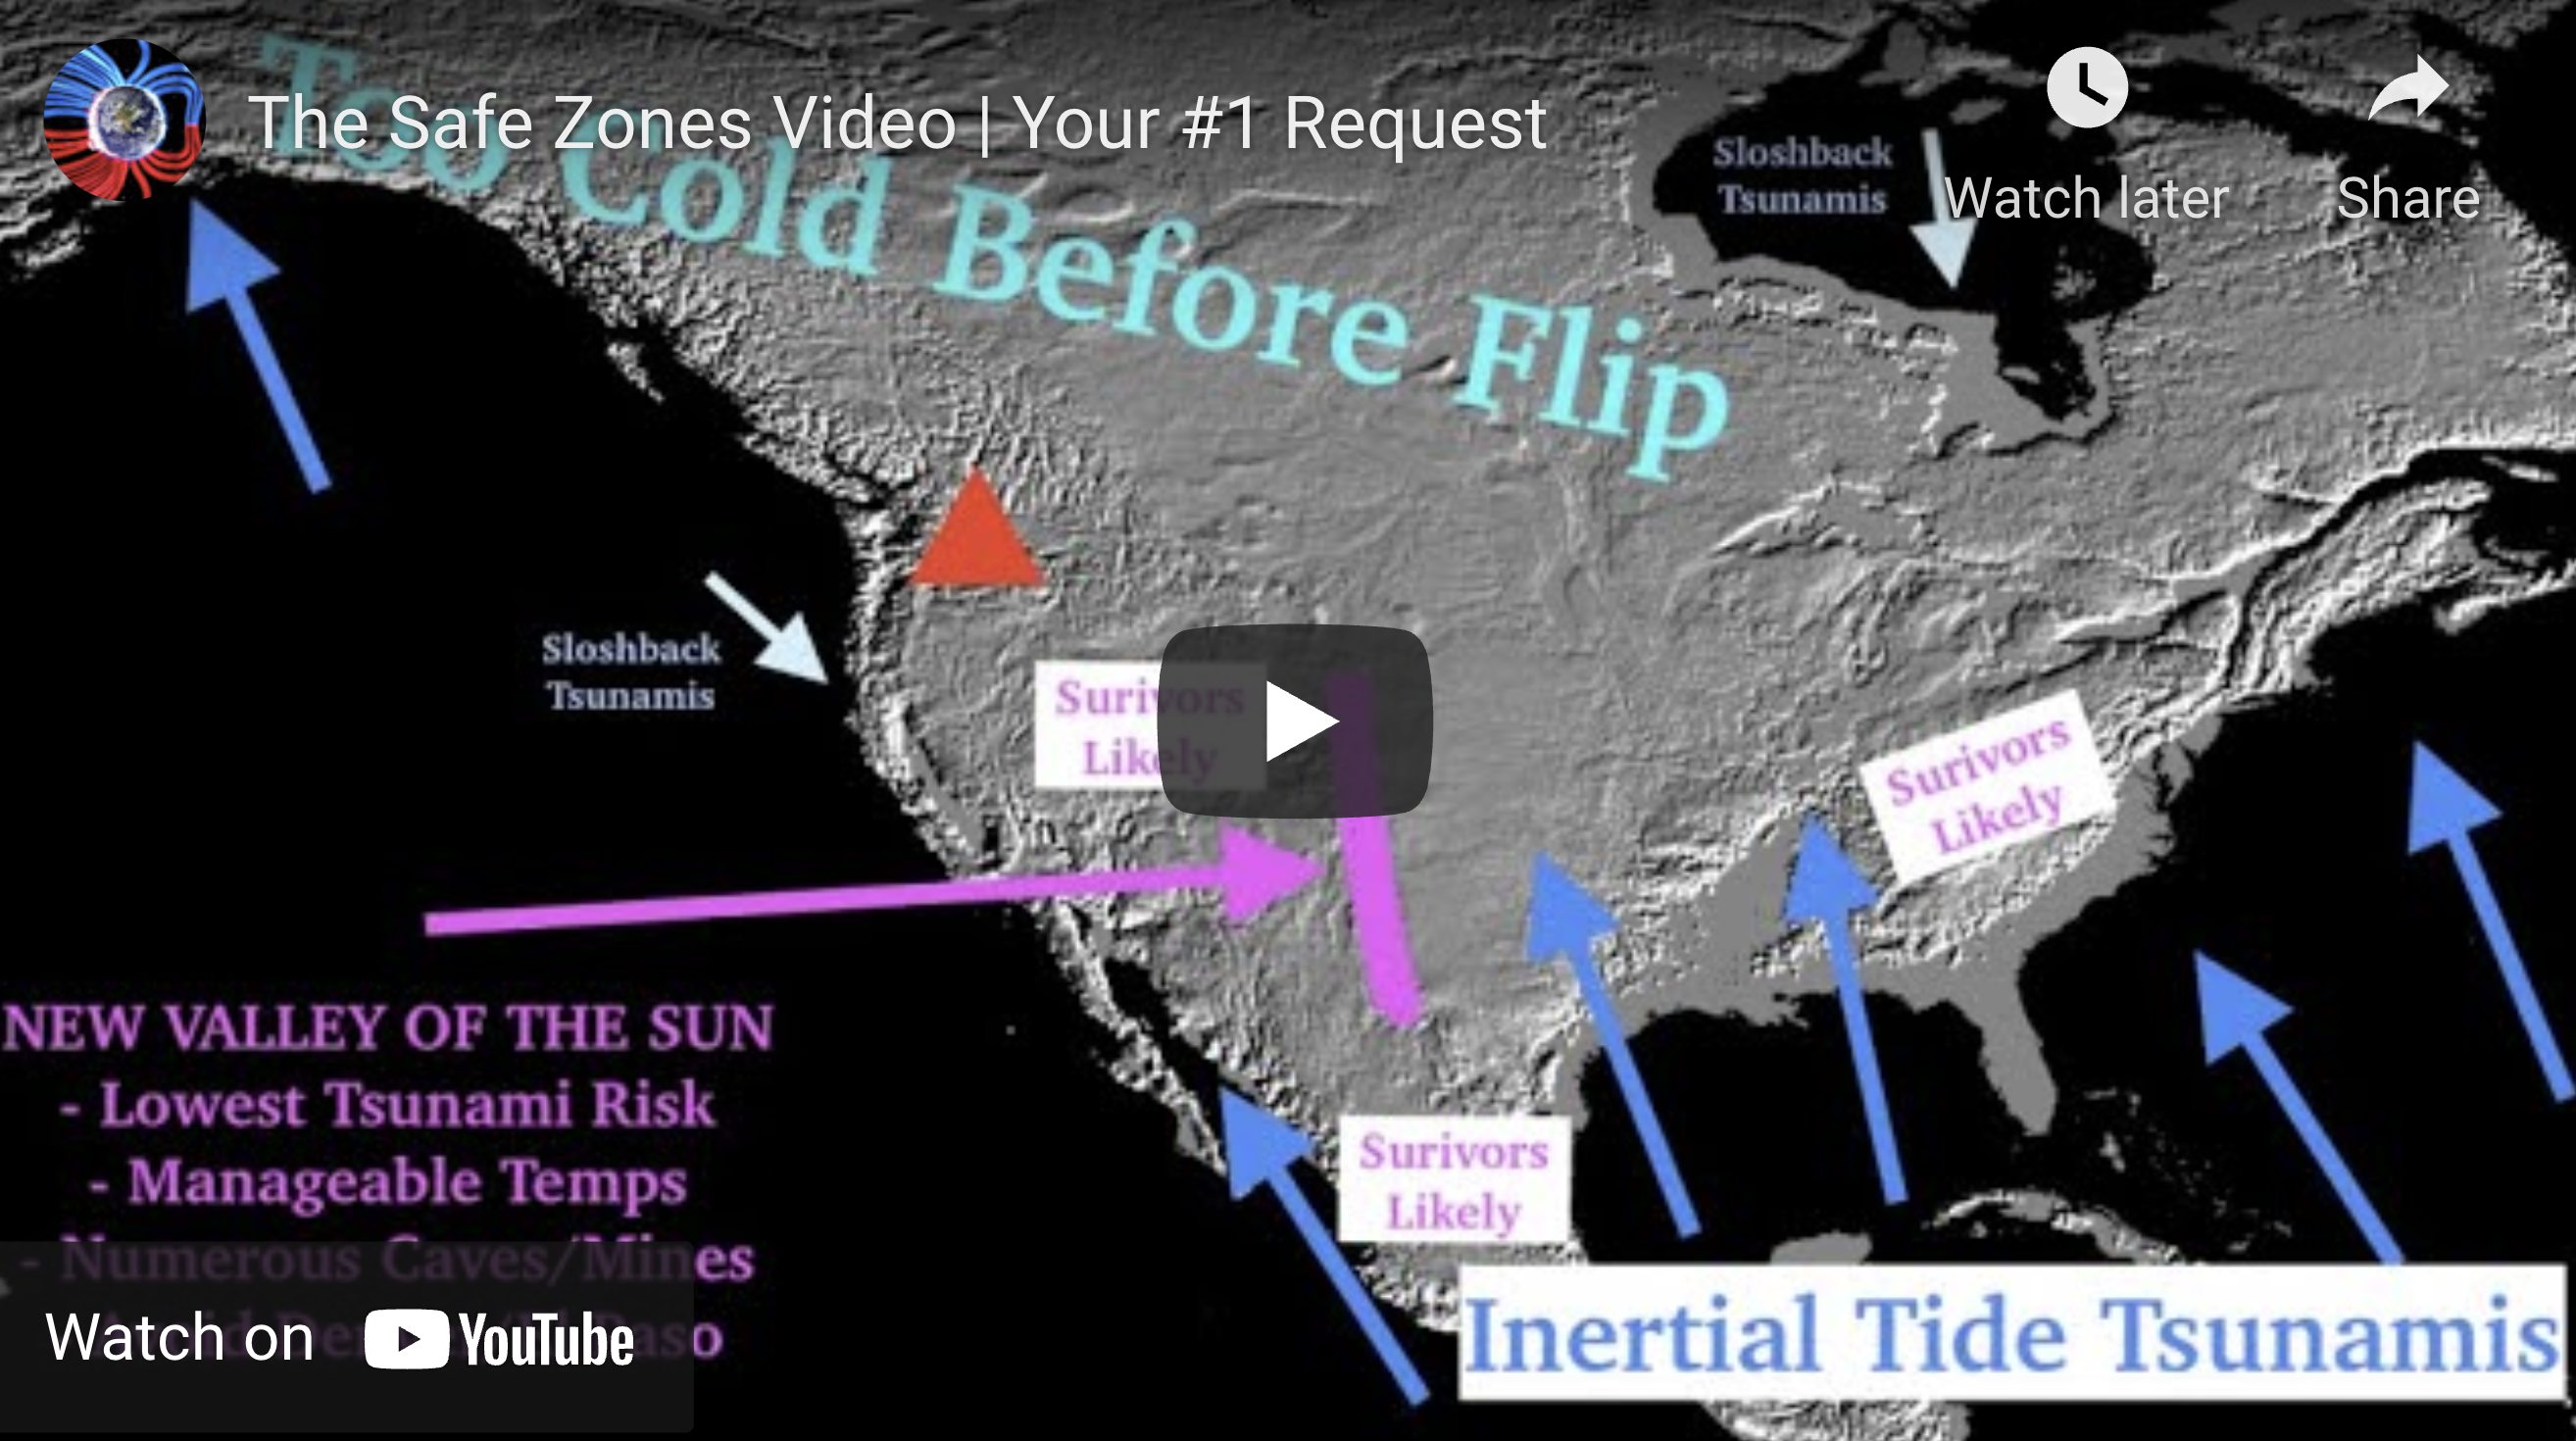 The Safe Zones Video Your 1 Request Suspicious Observers Post EXZM Zack Mount June 29th 2021